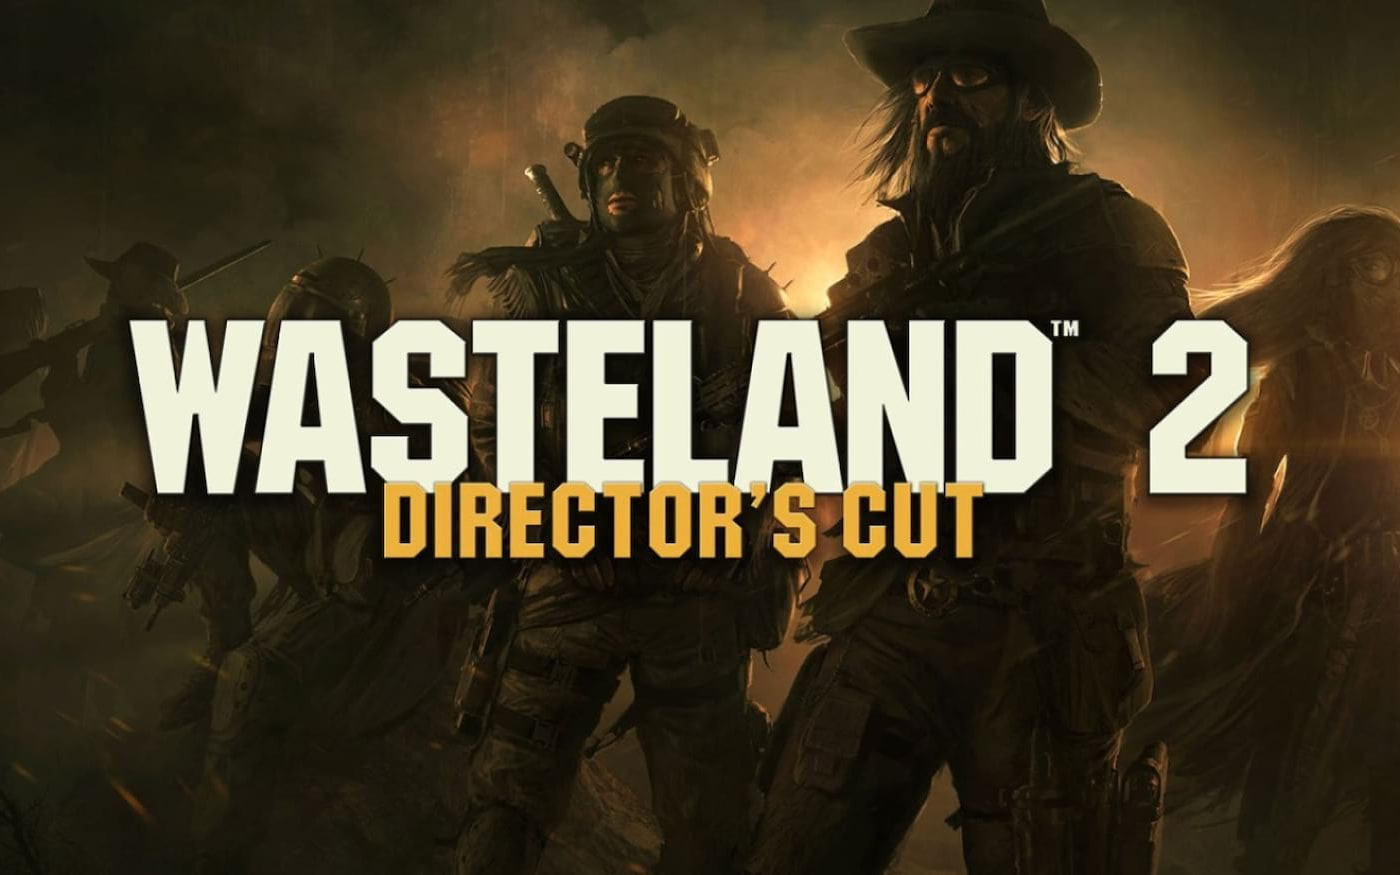 Wasteland 2 gratuito no site distribuidora de jogos da CD Projekt RED, GOG